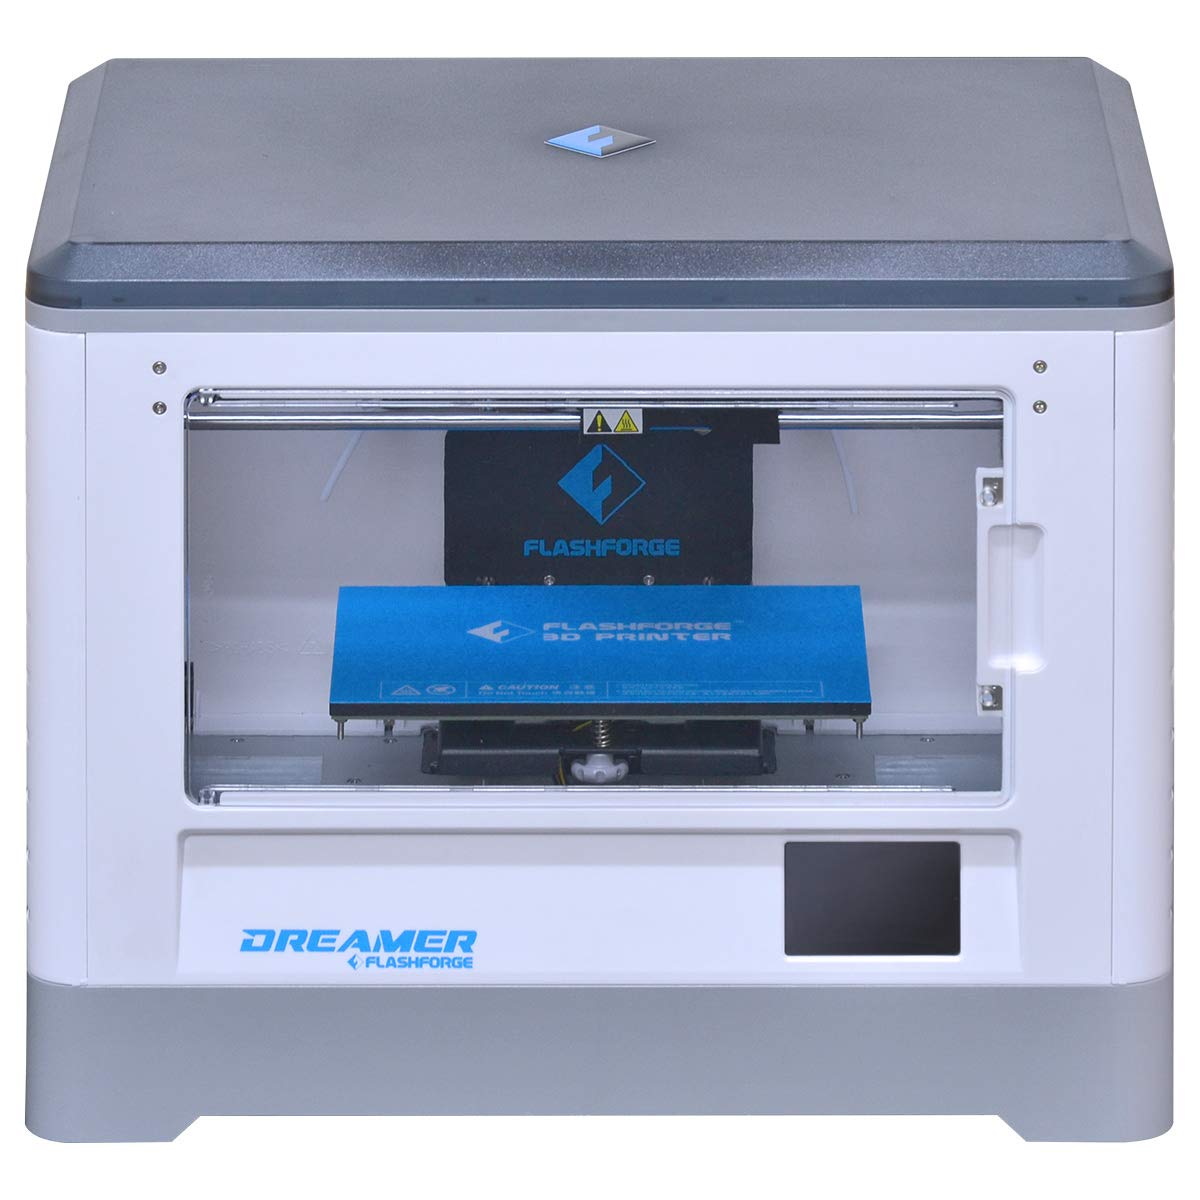 Flashforge Dreamer 3D Printer Dual-extruder Printer with Clear Door and  Rear Fans | IT-Shield